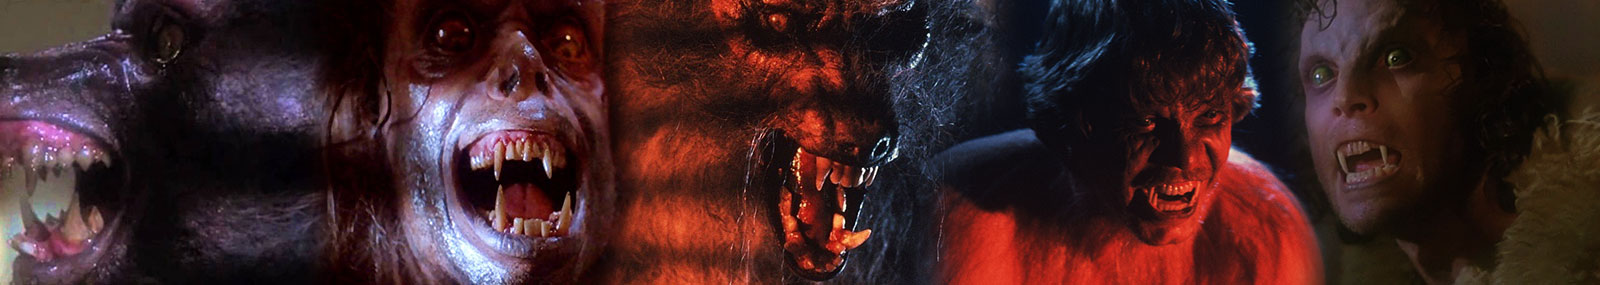 Werewolf_Thin_Article_Banner_V02